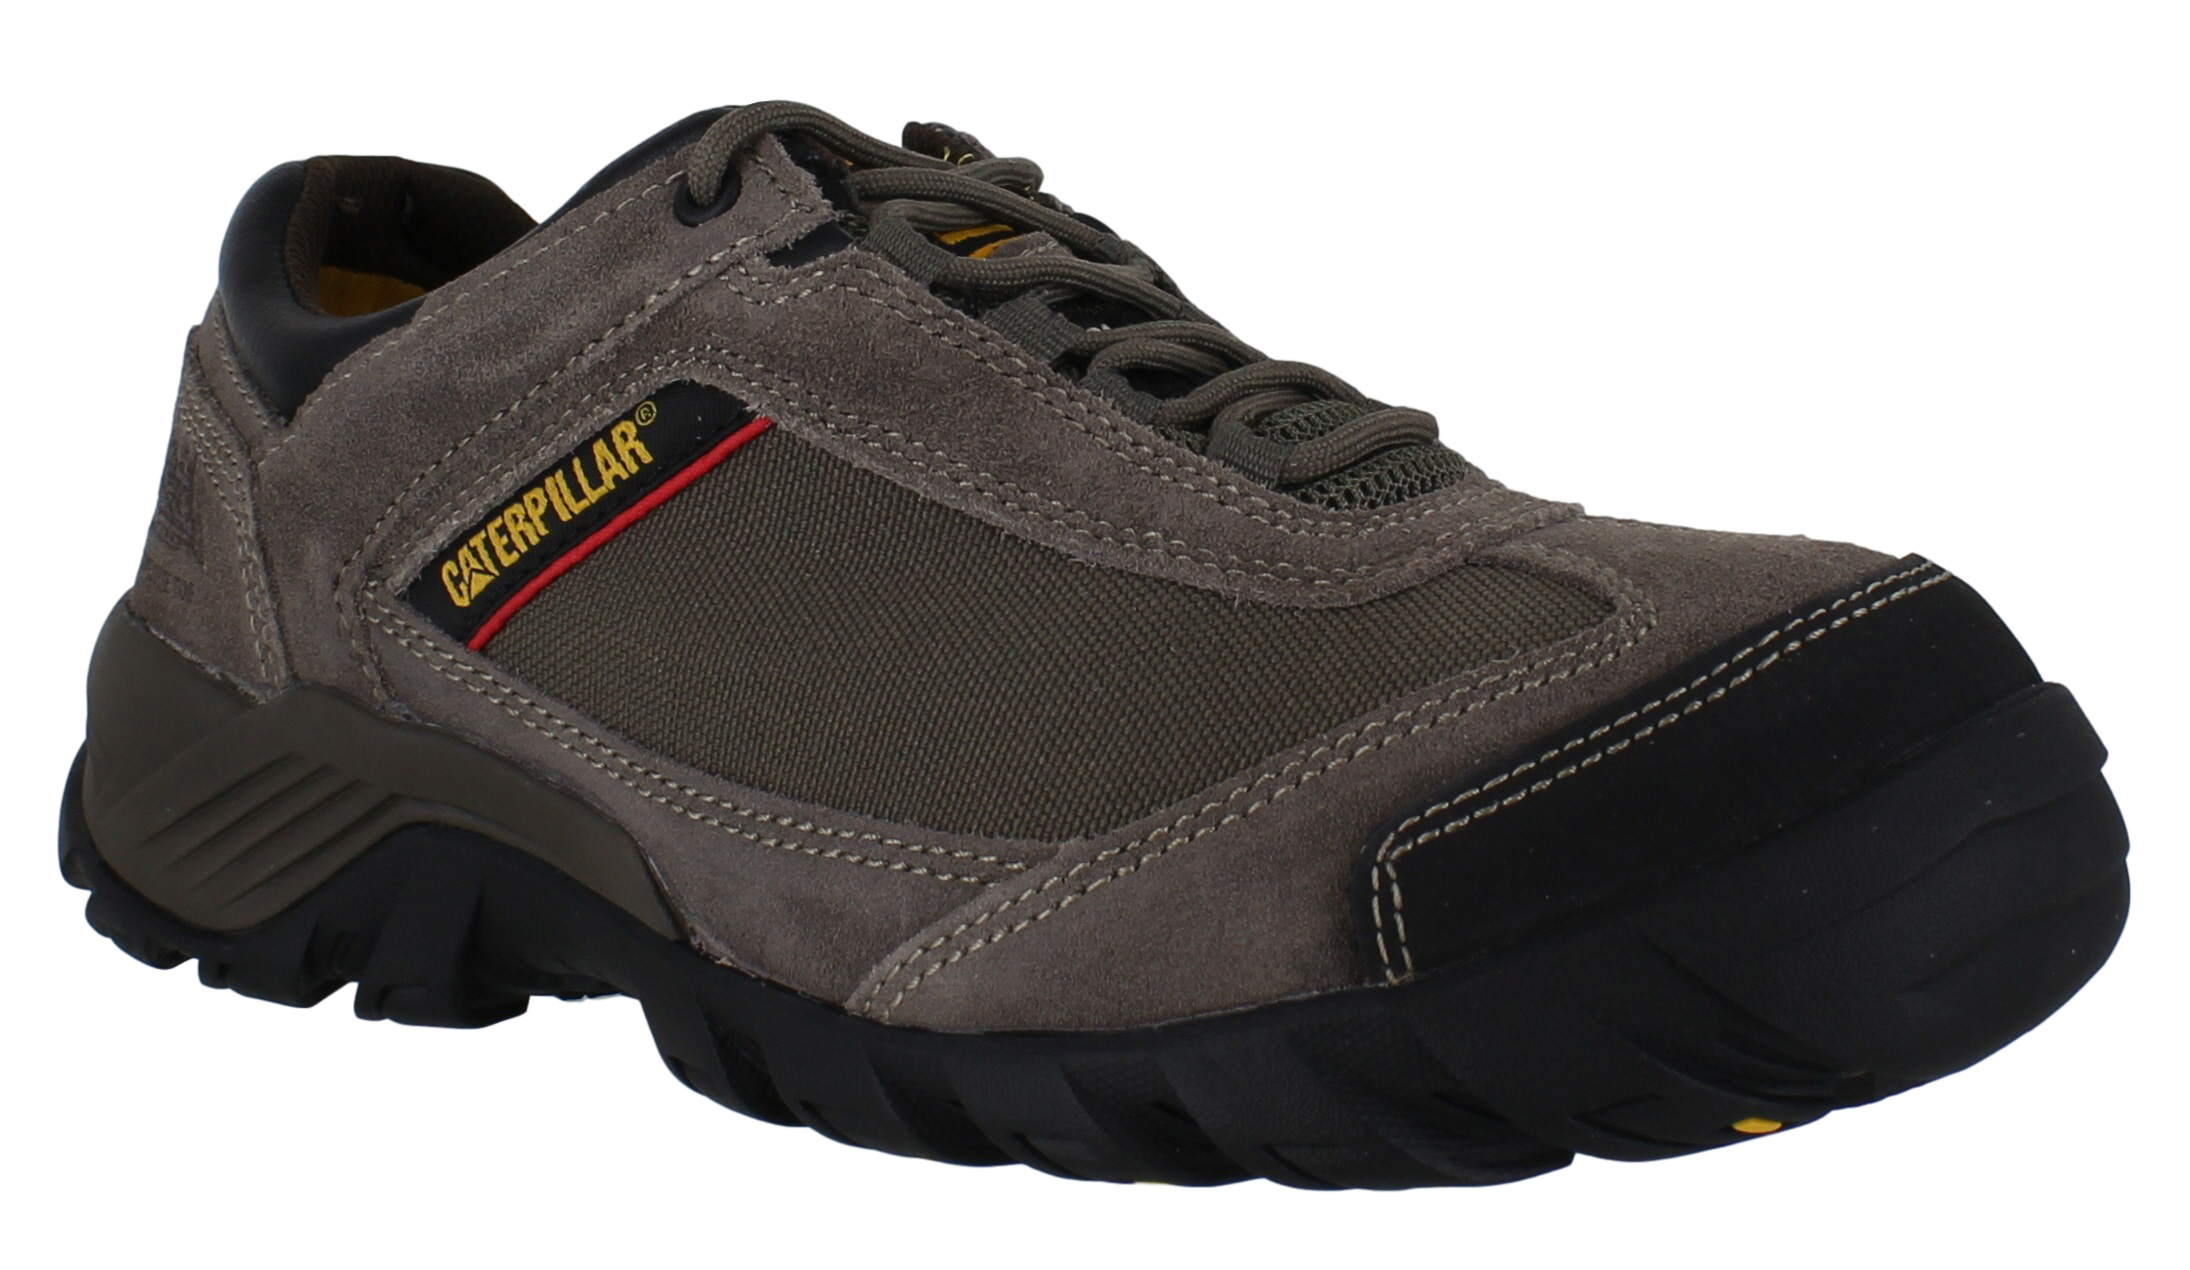 Brower S1p, Mens Safety Shoes CAT